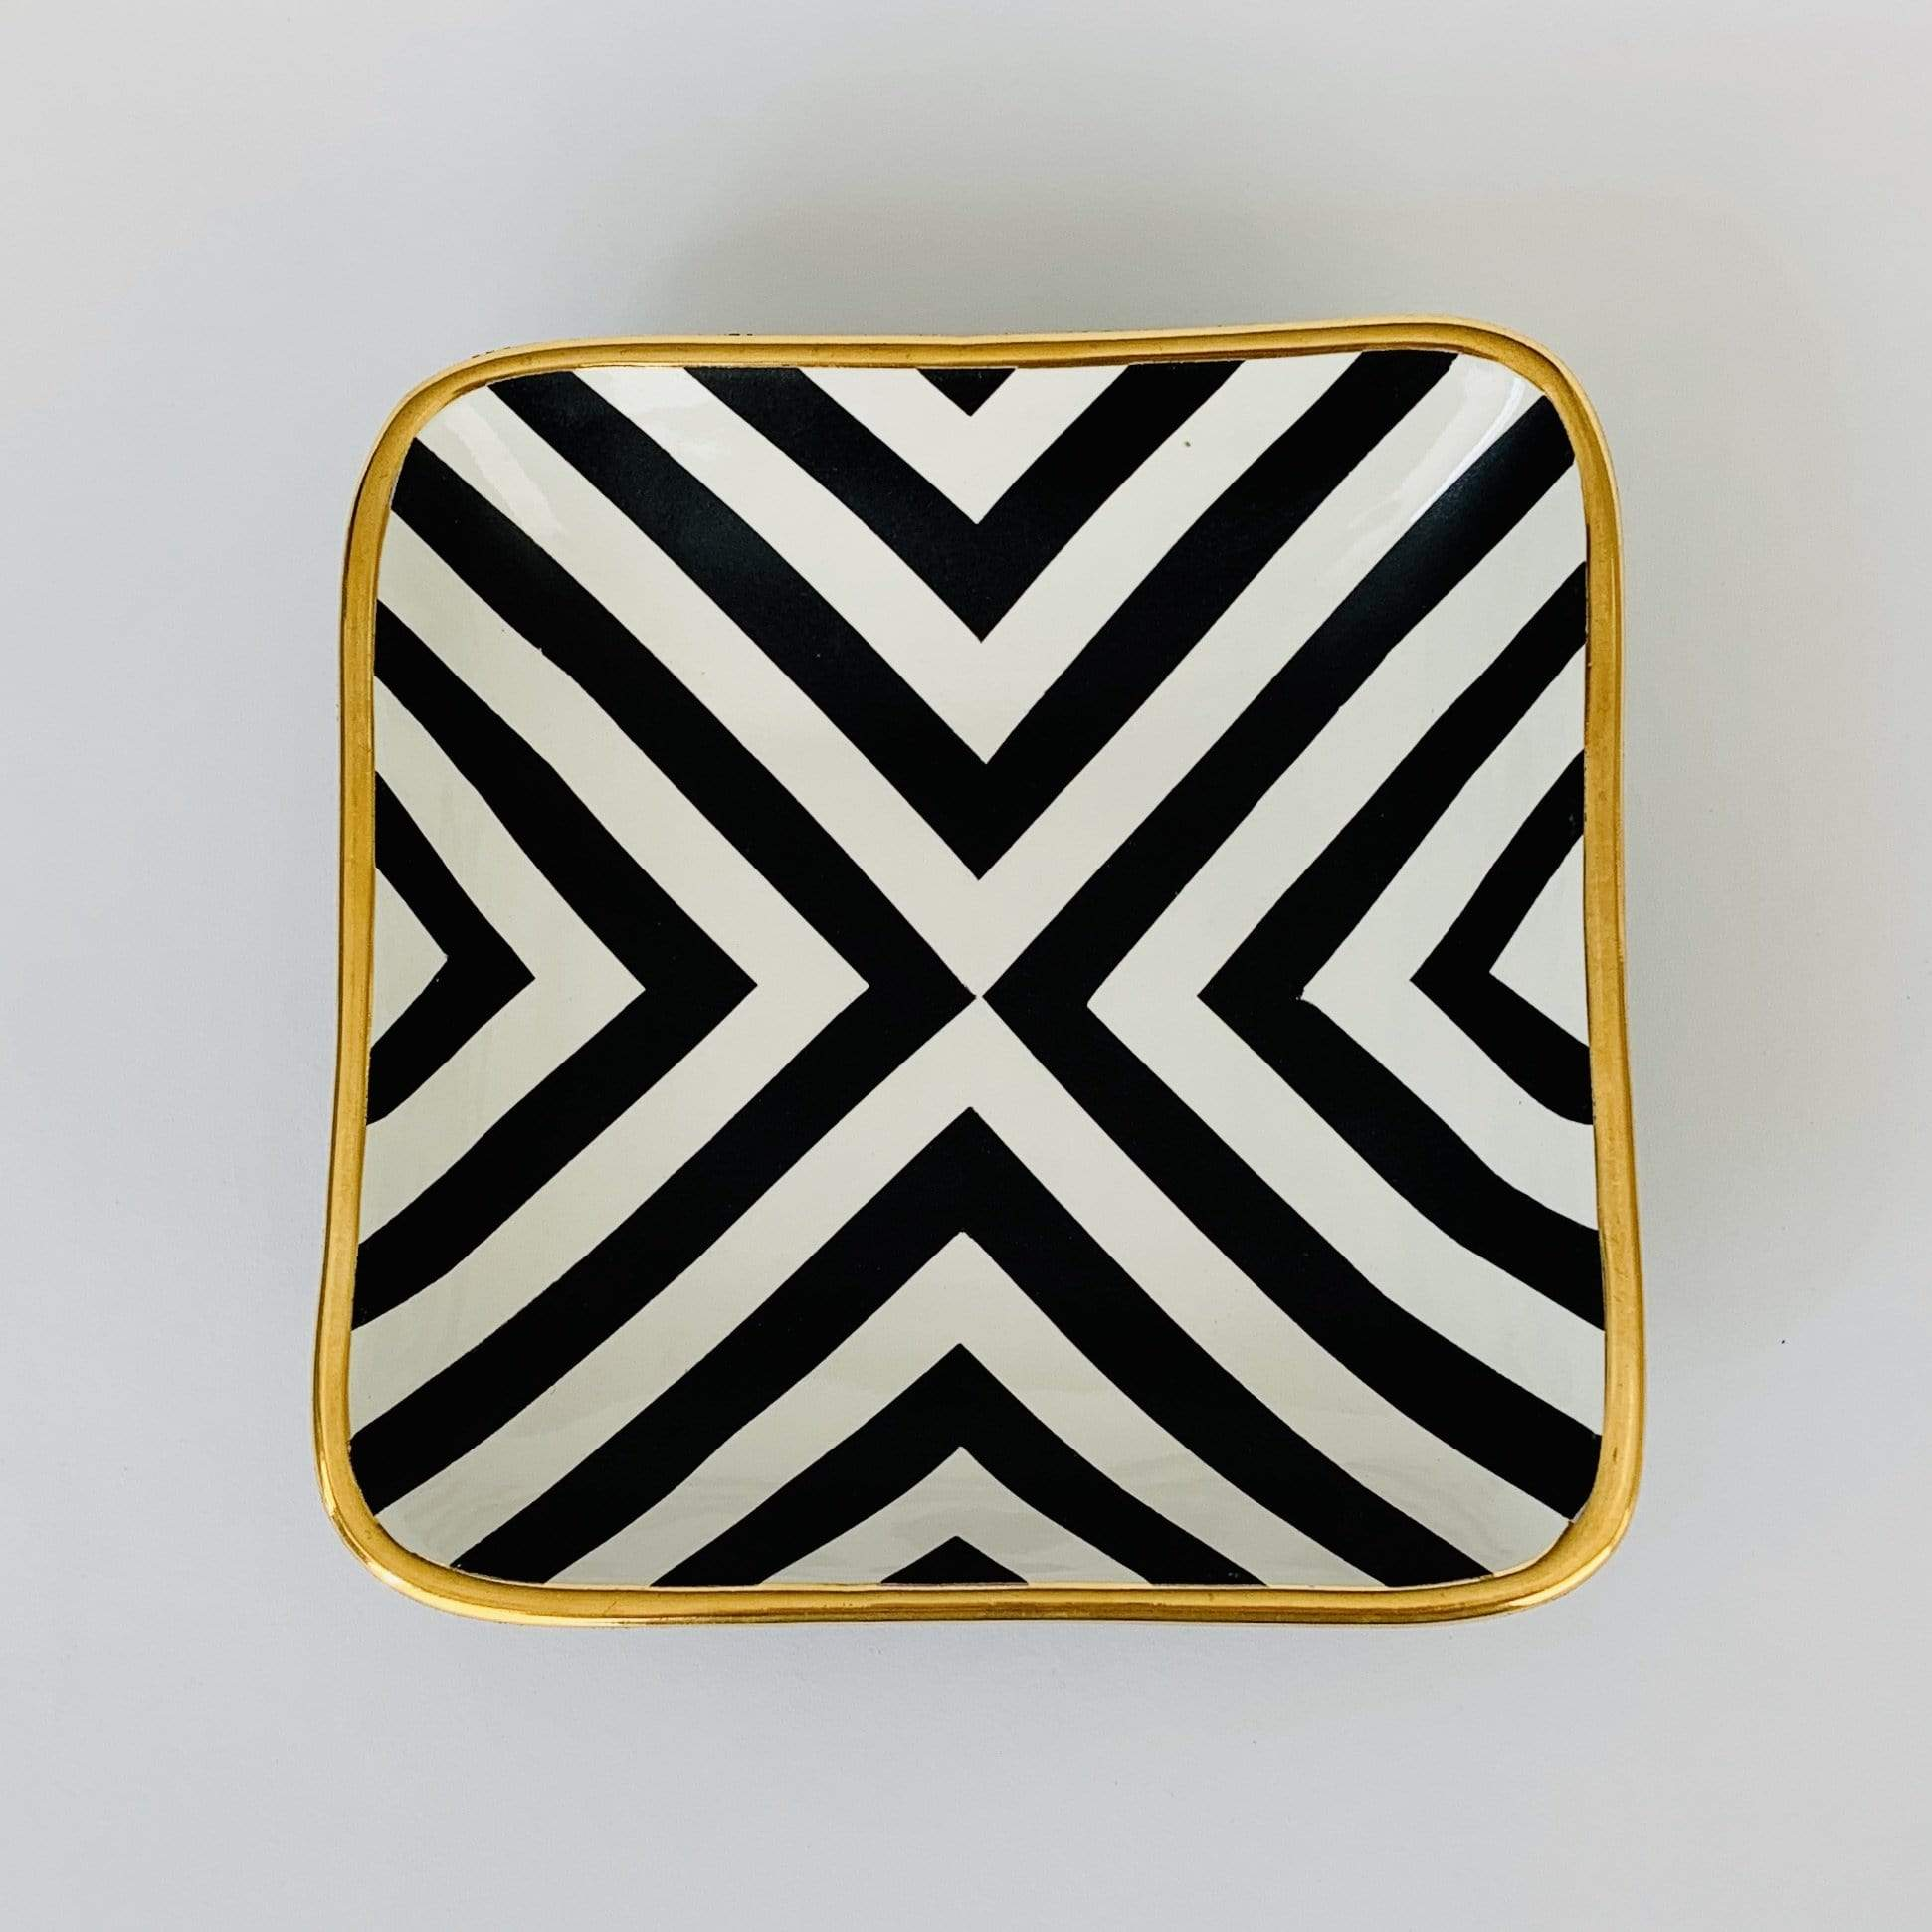 Square Cross Design Bowl